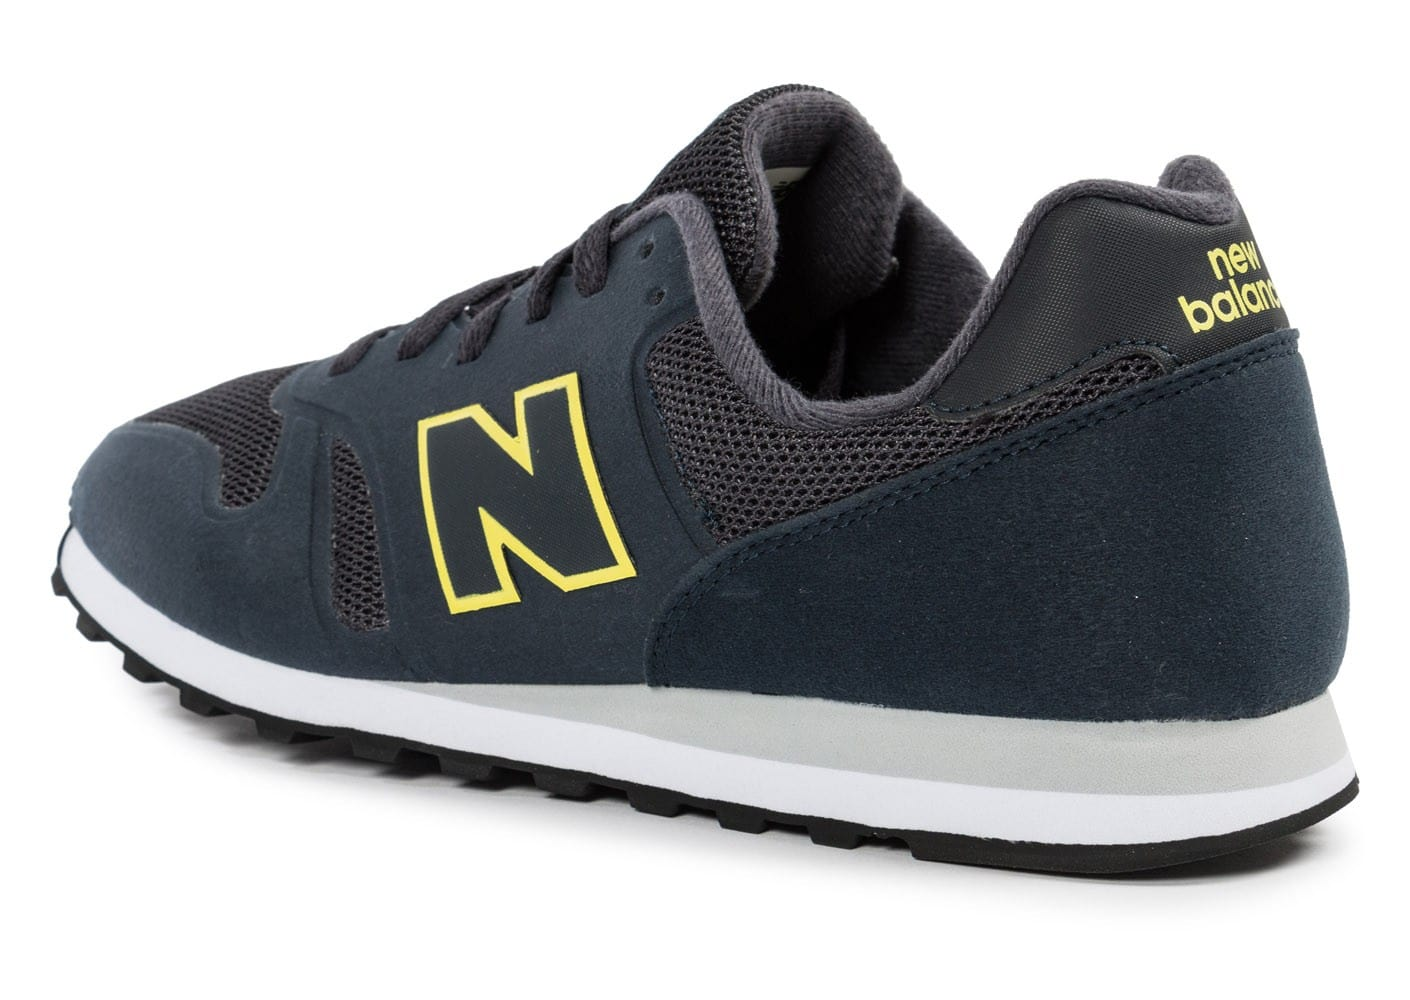 check out 9f060 26469 0538-chaussures-new-balance-md373-ny-bleu-marine-vue-arriere 1.jpg